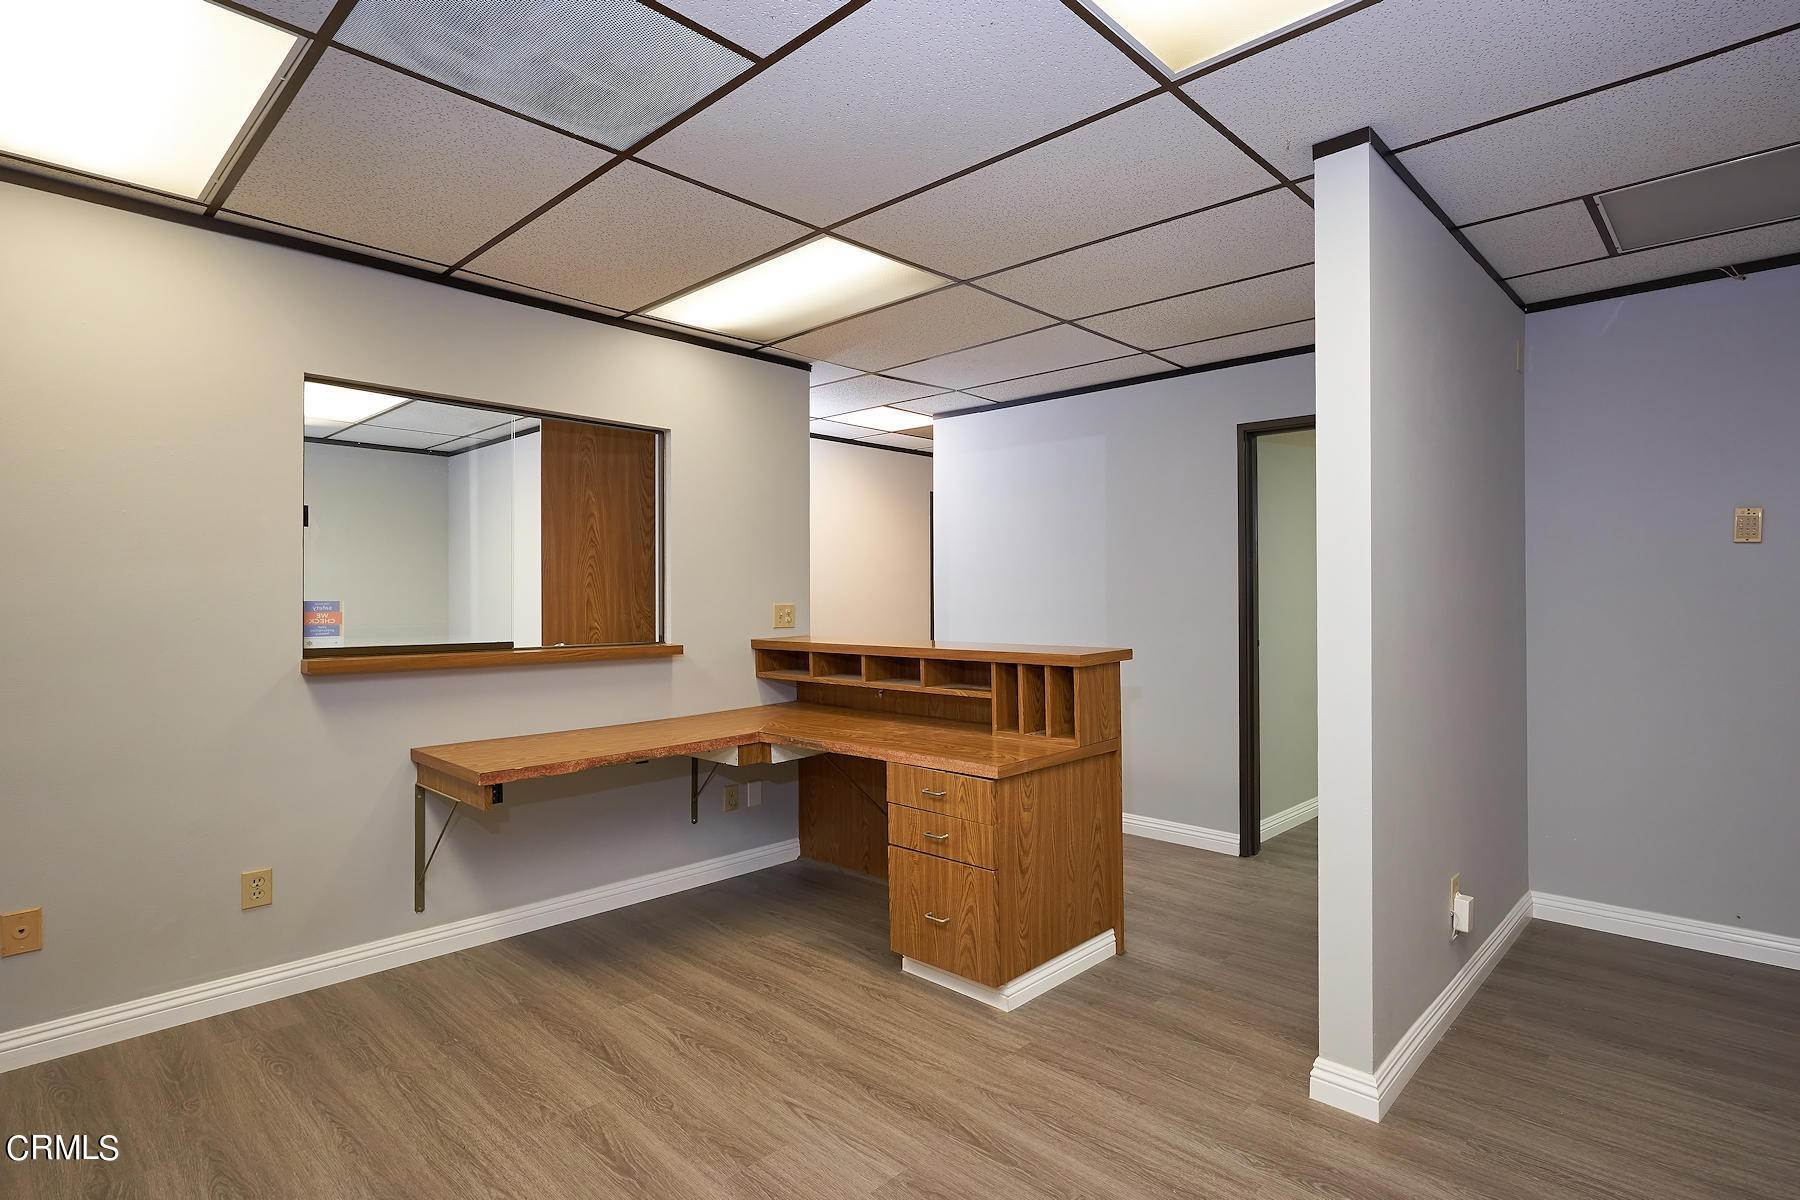 9. Offices for Sale at 921 West 7th Street Oxnard, California 93030 United States